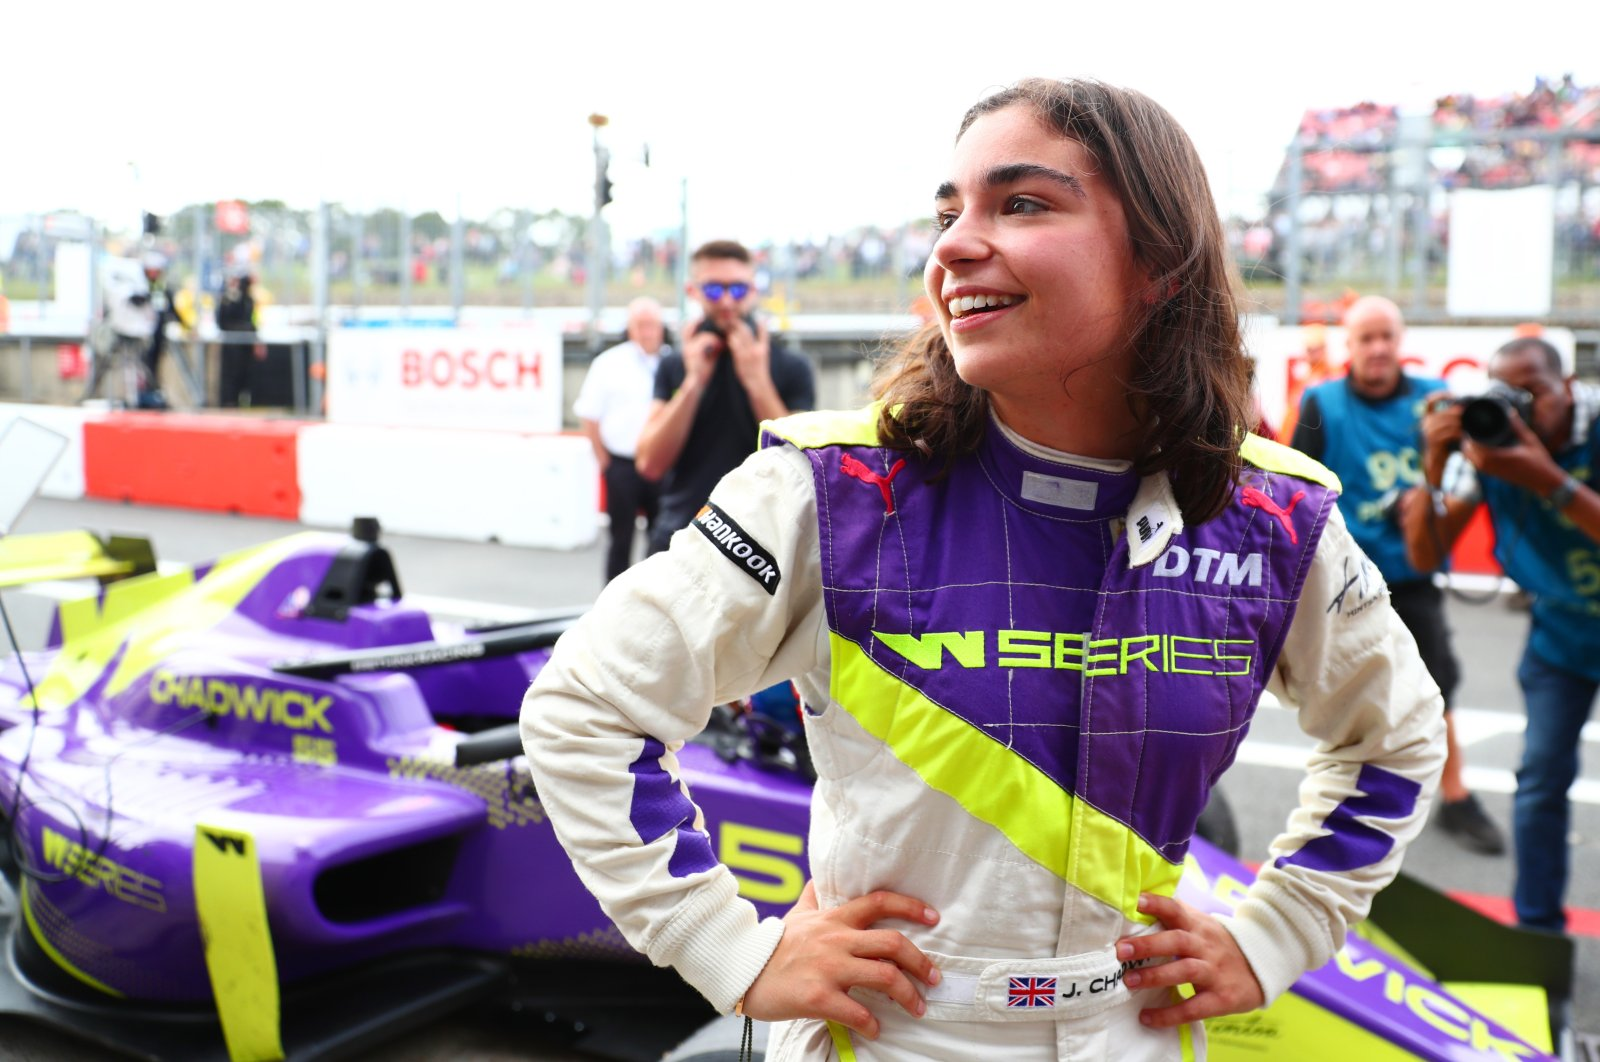 Jamie Chadwick reacts after winning the inaugural W Series Championship at Brands Hatch in Longfield, England, Aug. 11, 2019. (Getty Images)